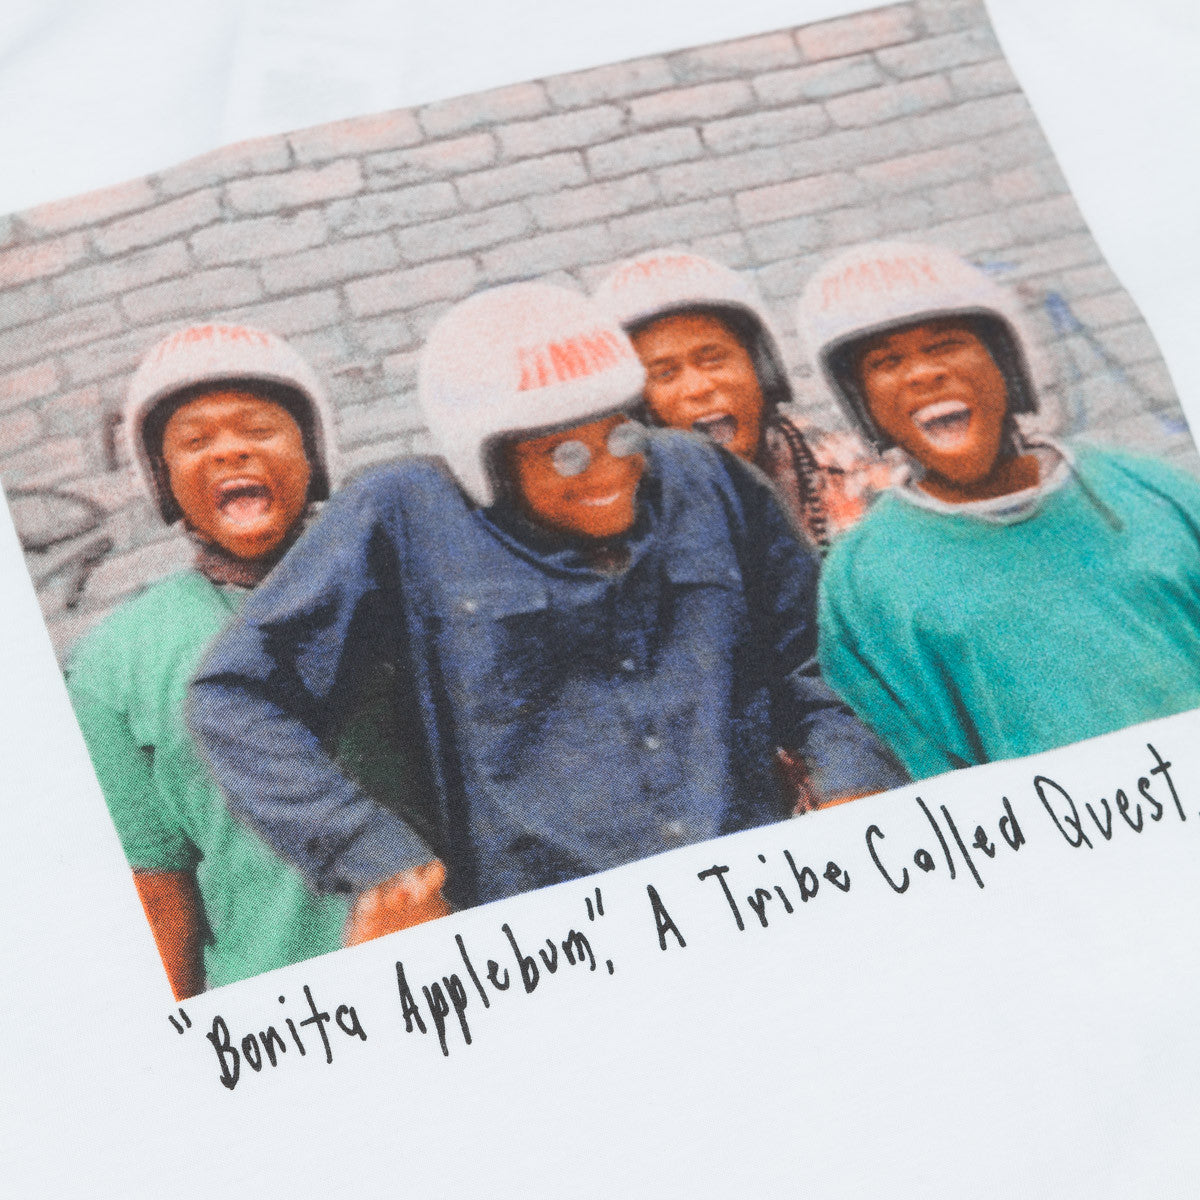 Stussy x ATCQ Bonita Applebum T-Shirt White